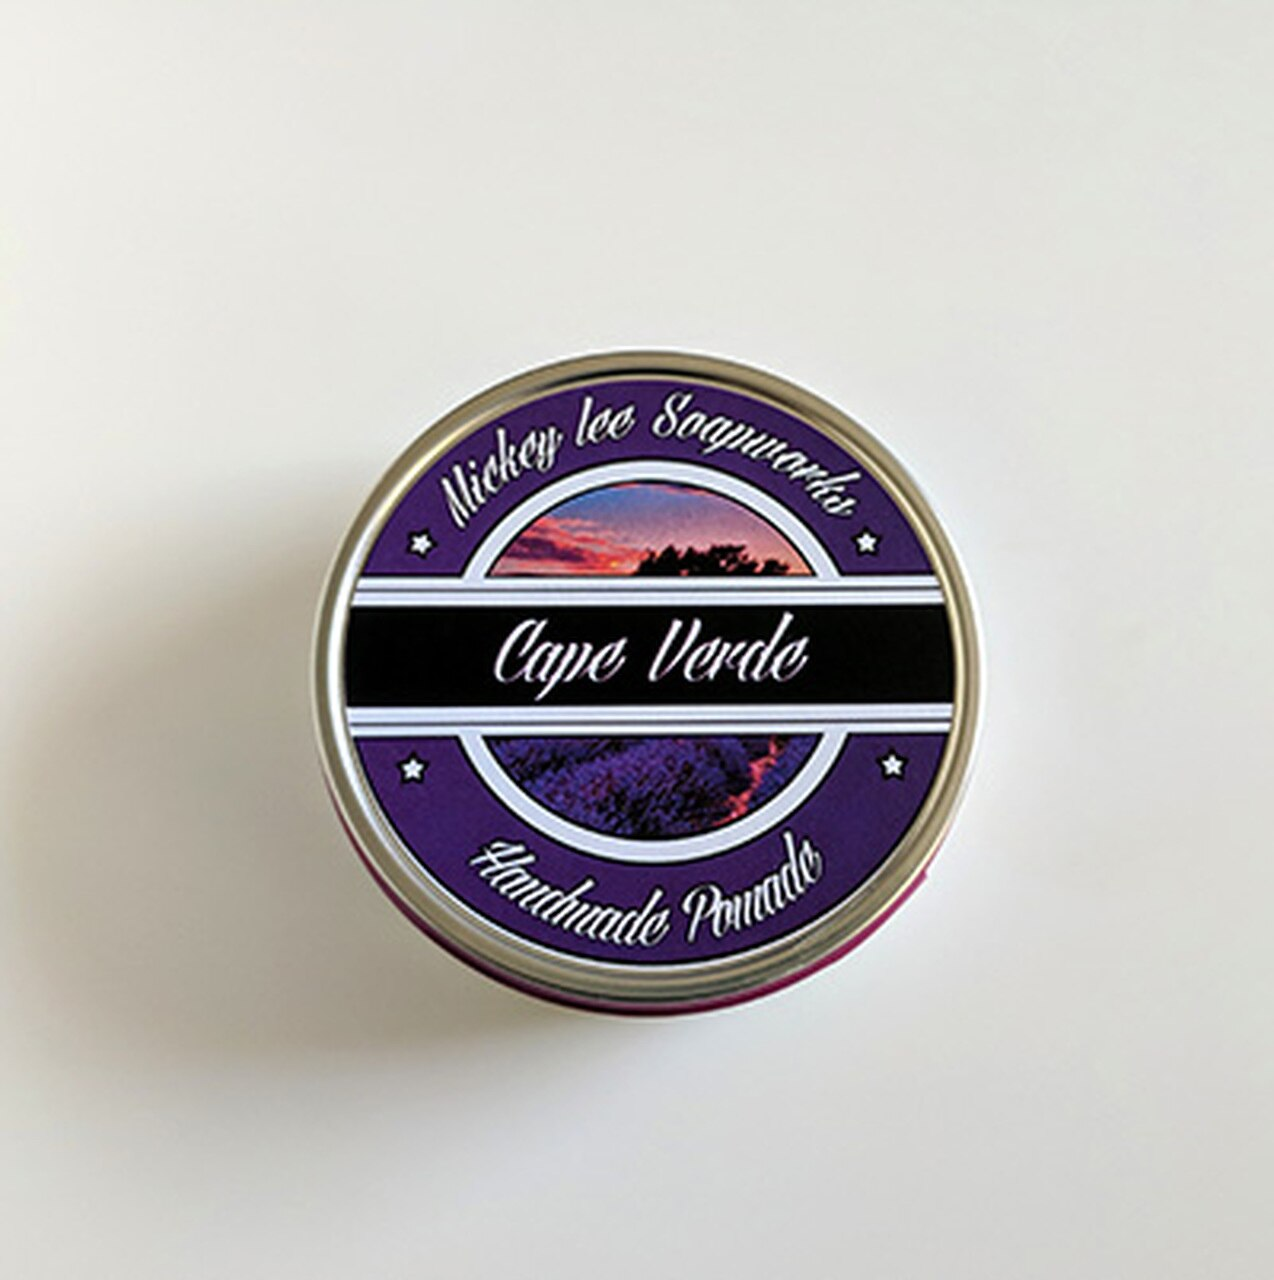 Mickey Lee - Water Based Pomade - Cape Verde